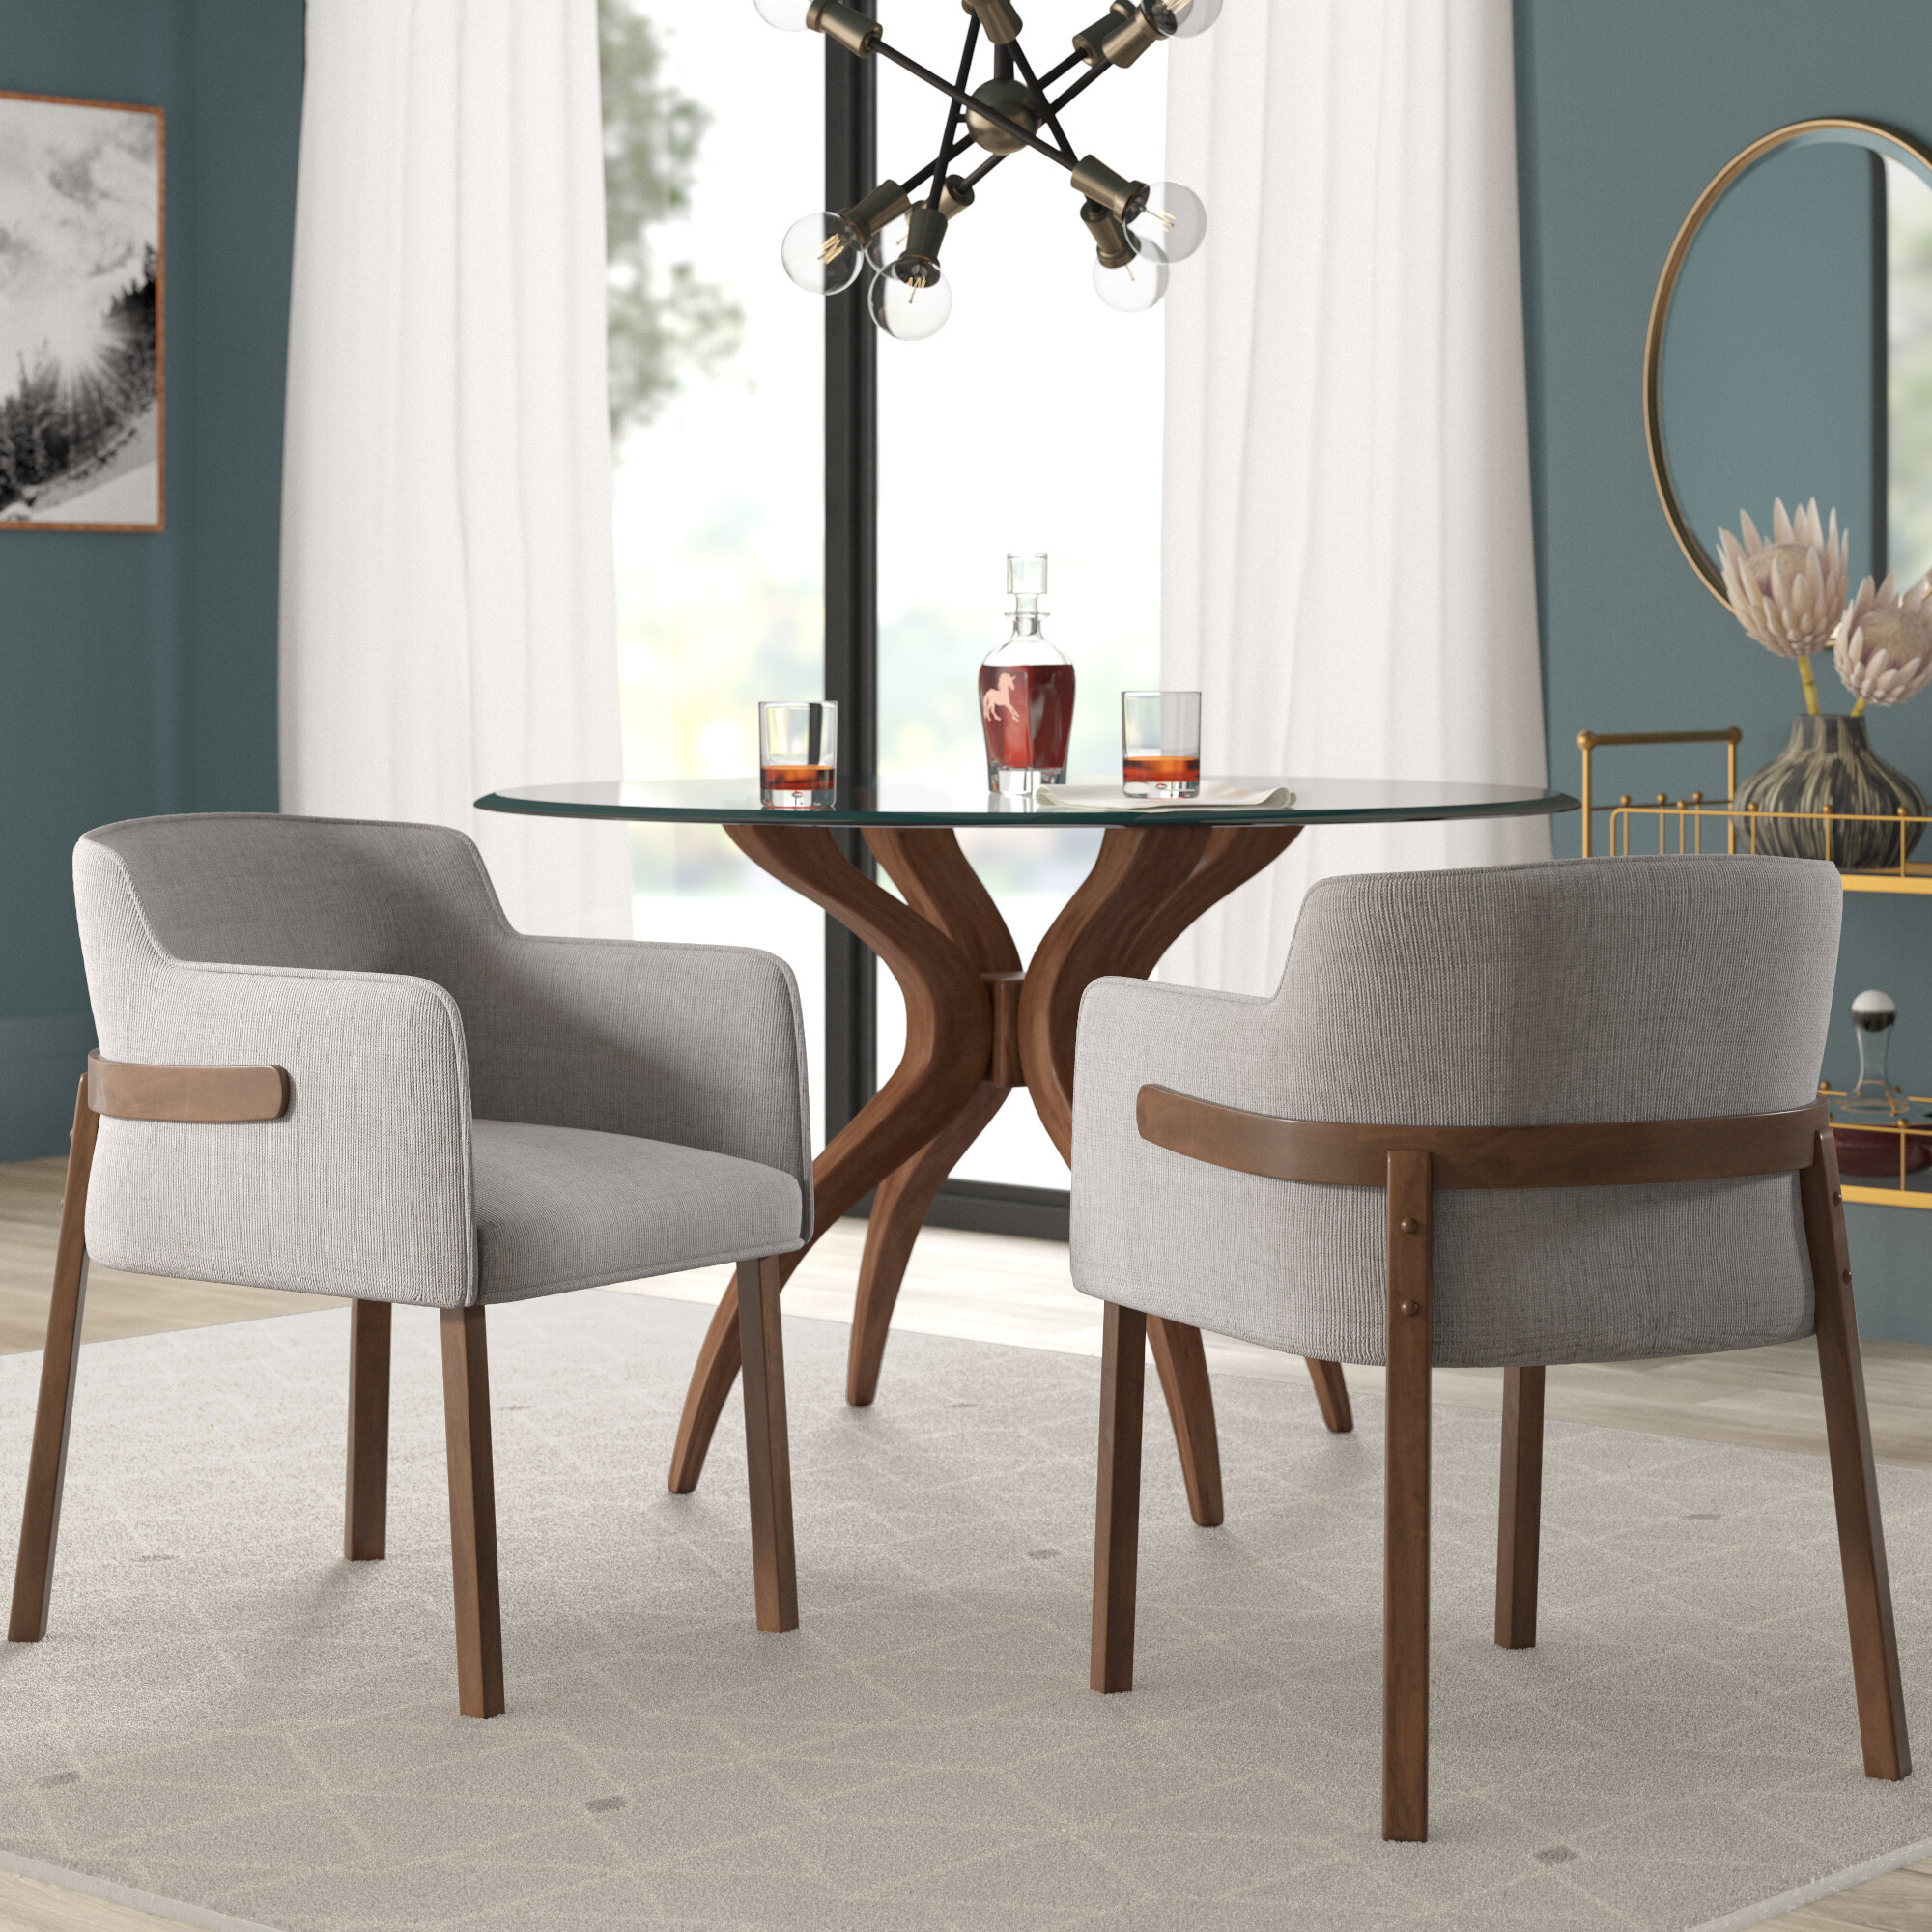 Mukai Upholstered Dining Chair Throughout Most Recently Released Mukai 5 Piece Dining Sets (View 7 of 20)